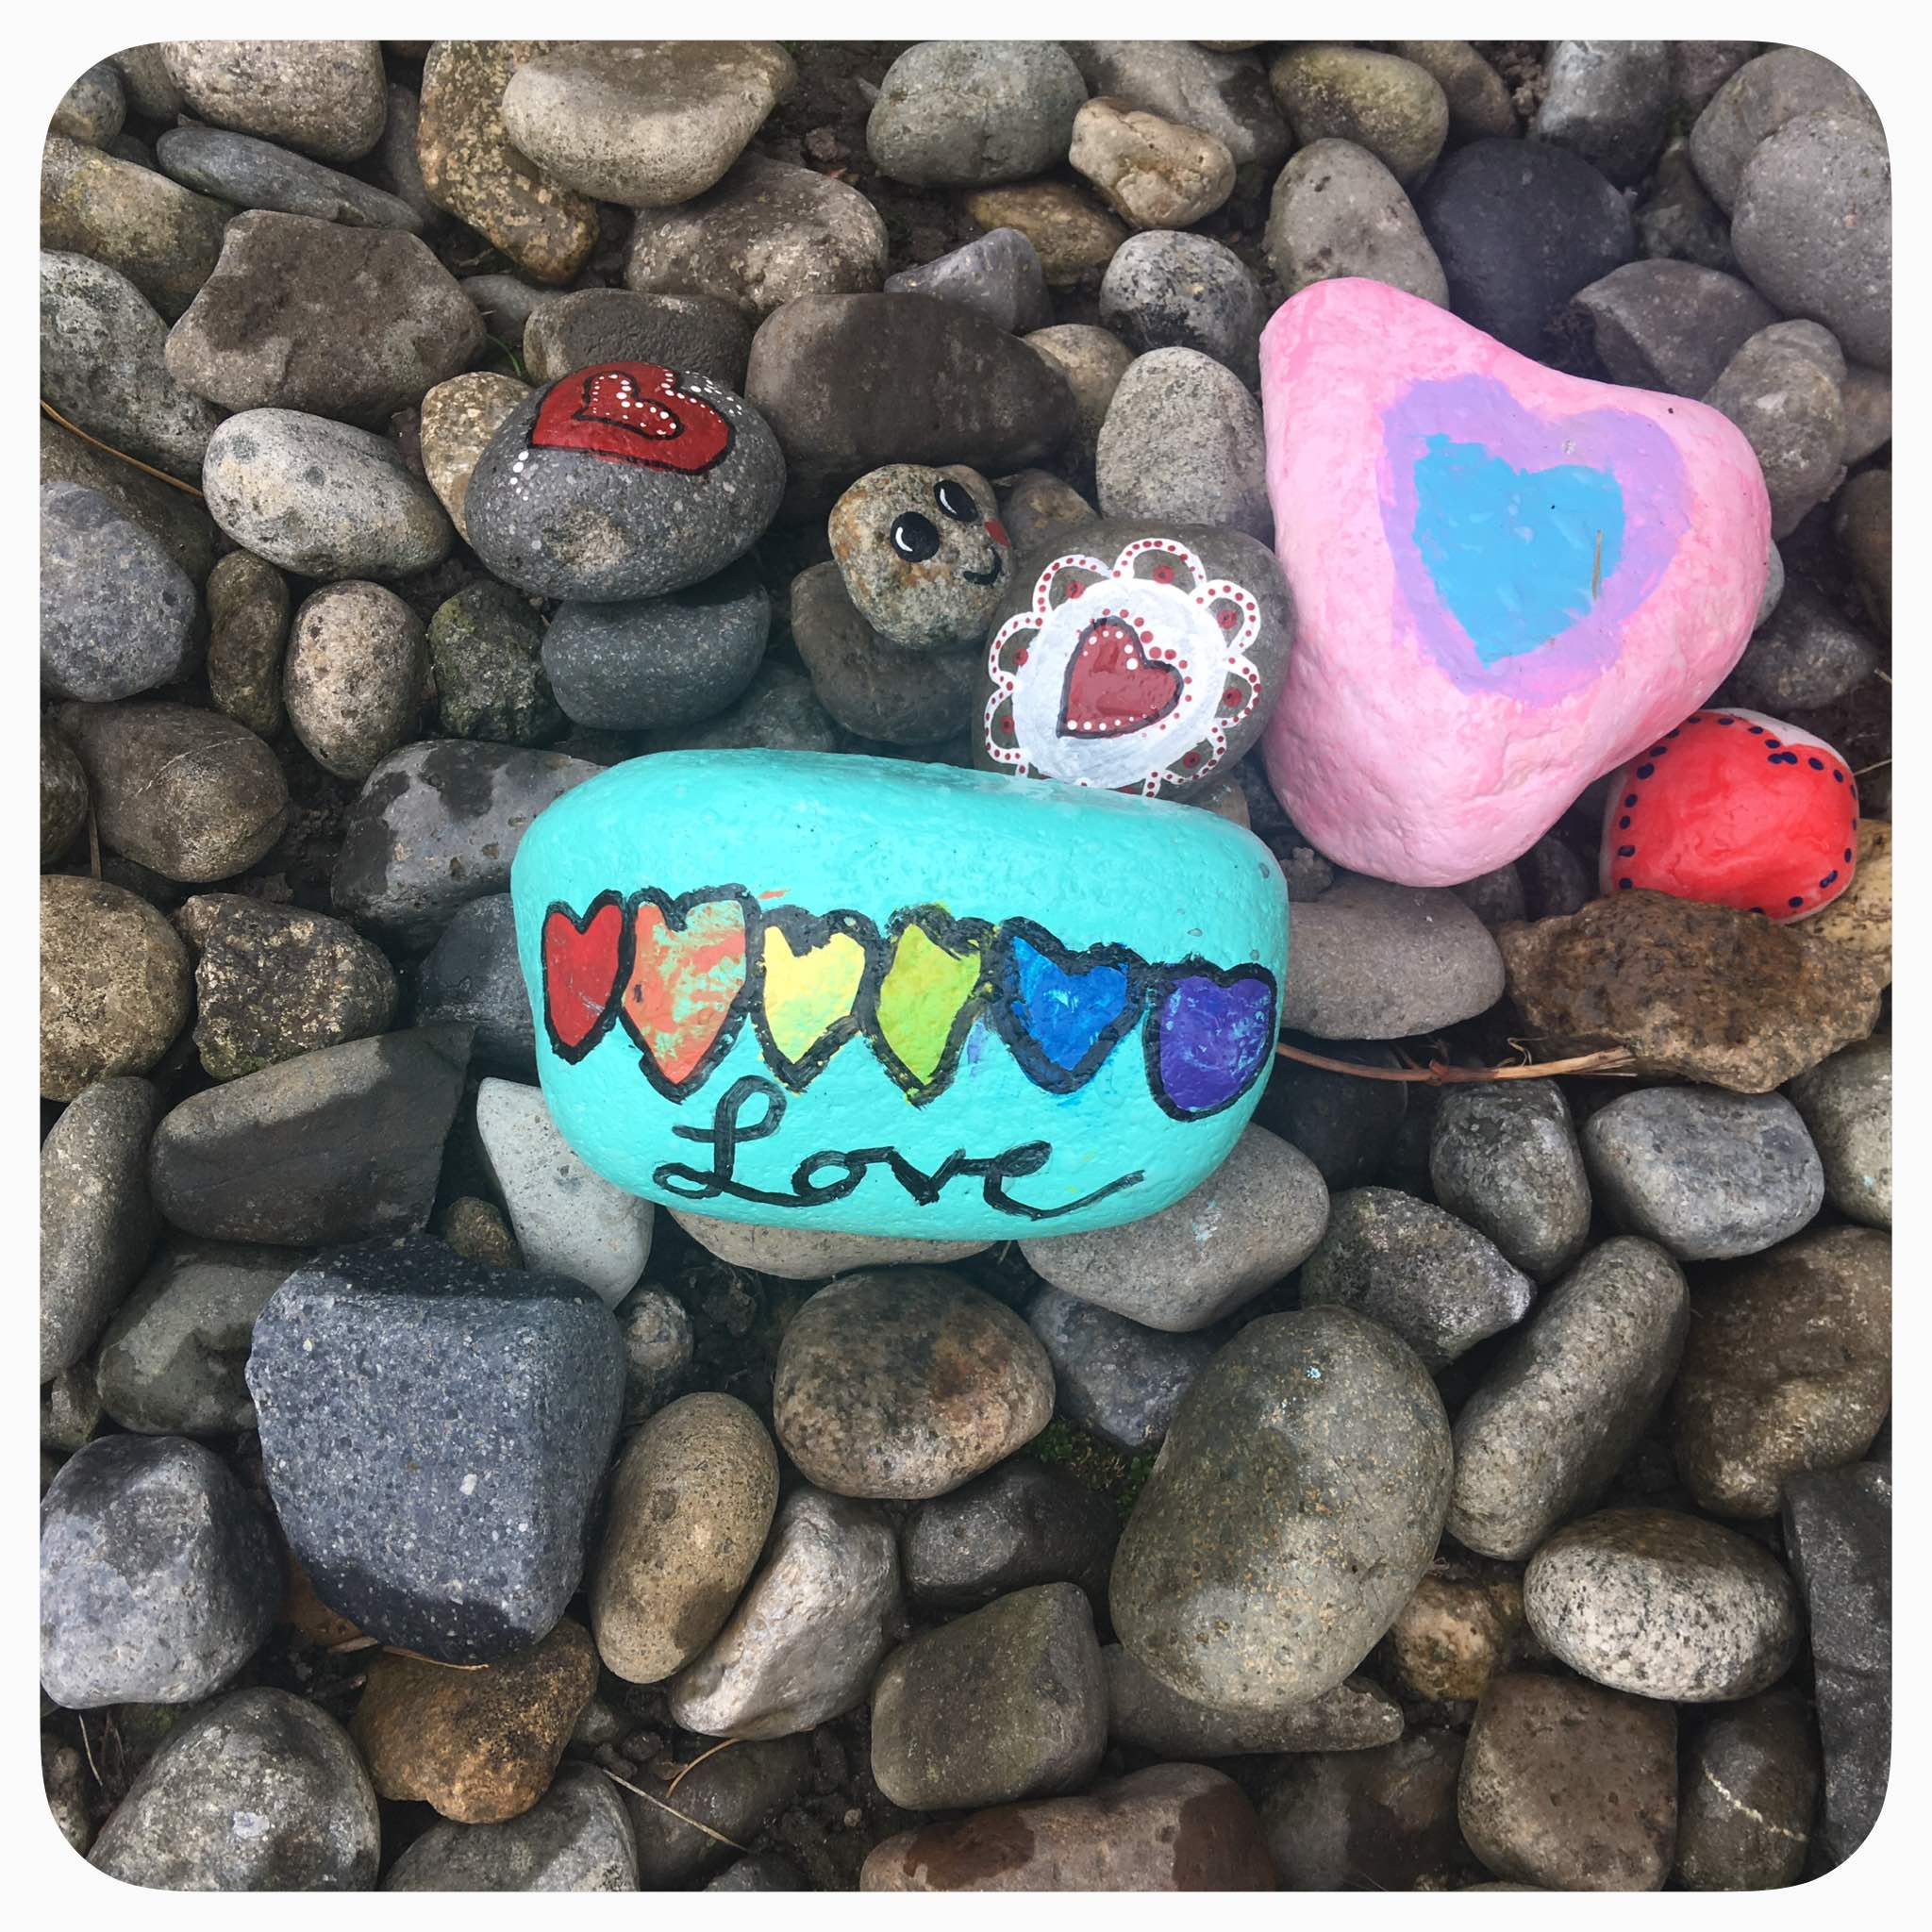 Rainbow inspired rock painting. This is a family friendly and inexpensive activity to keep children entertained. There are many rock groups you can join online.